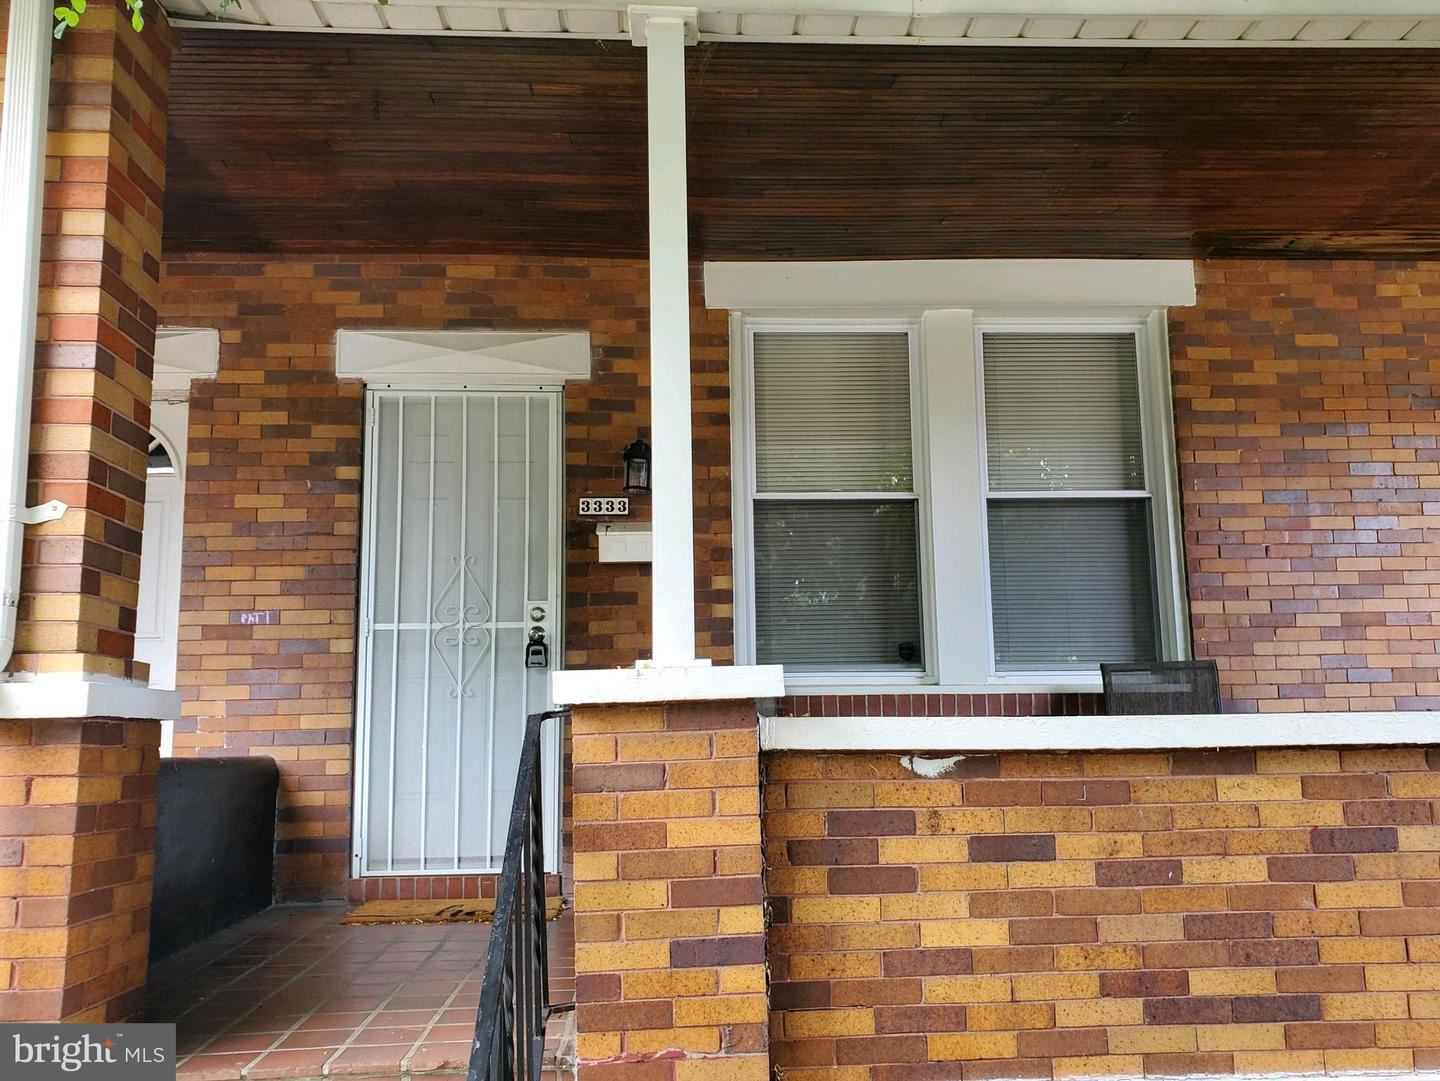 3333 CLIFTMONT AVE, Baltimore, MD 21213 - MLS#: MDBA549052